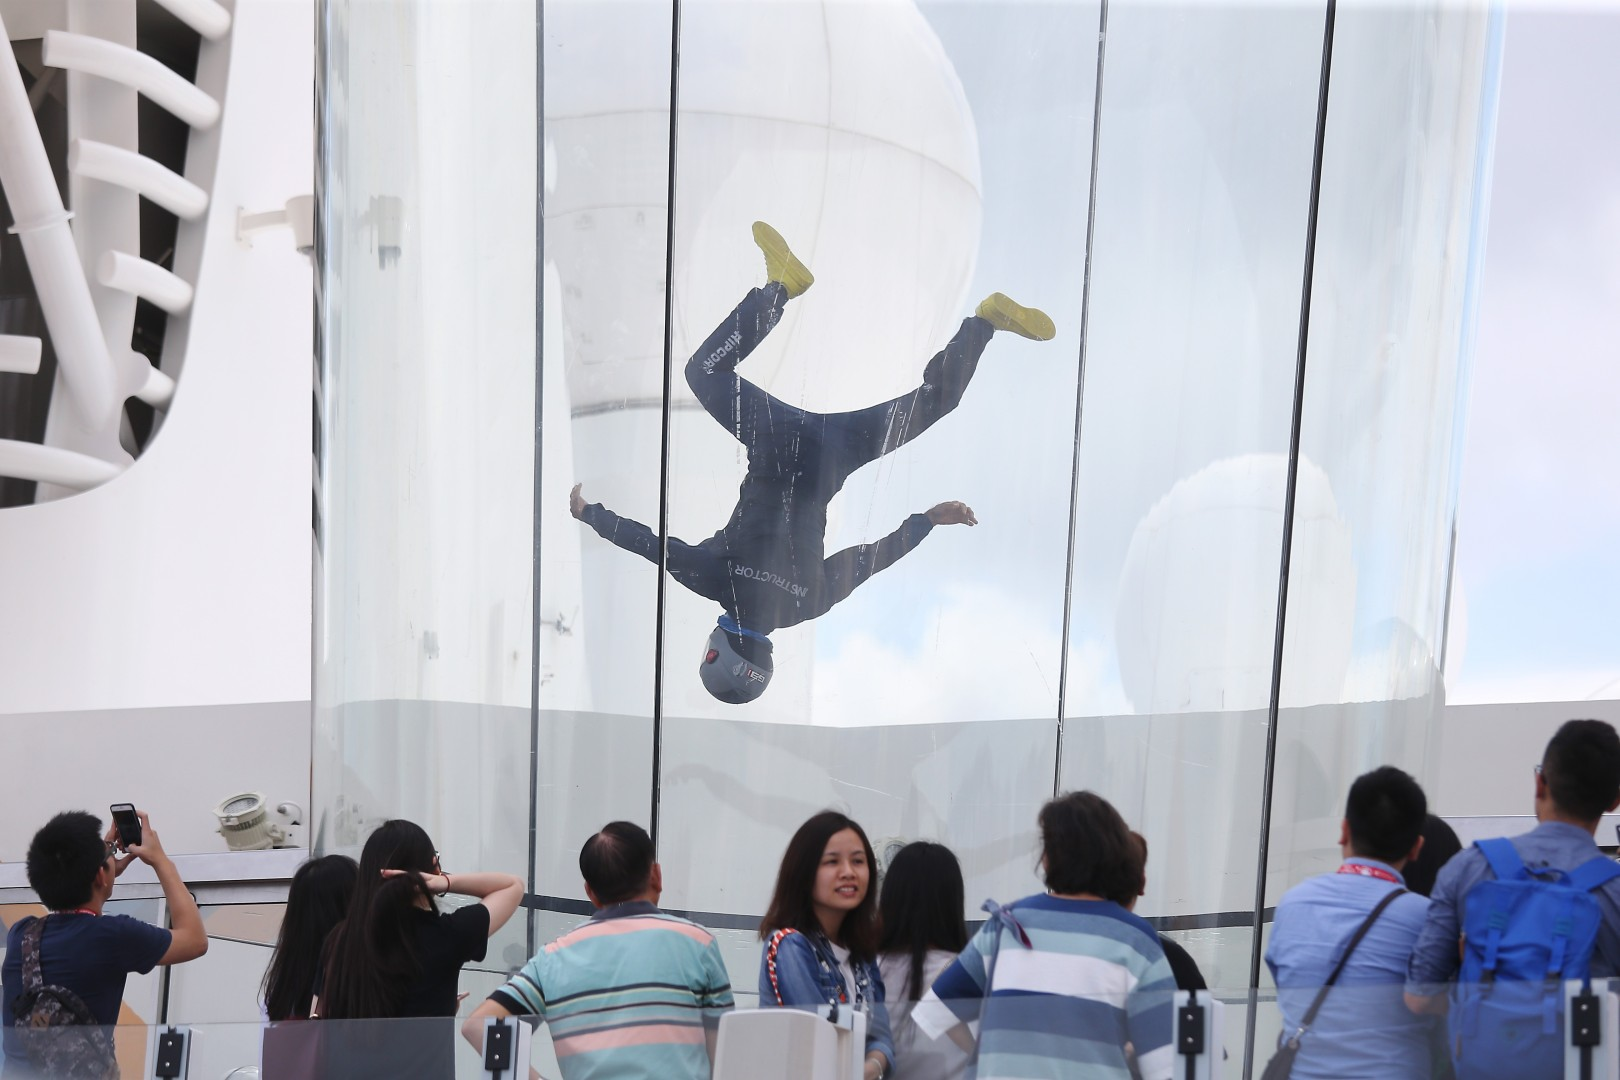 ee05cb670 From a drop zone in pre-handover Hong Kong to the new fad of indoor  skydiving | South China Morning Post